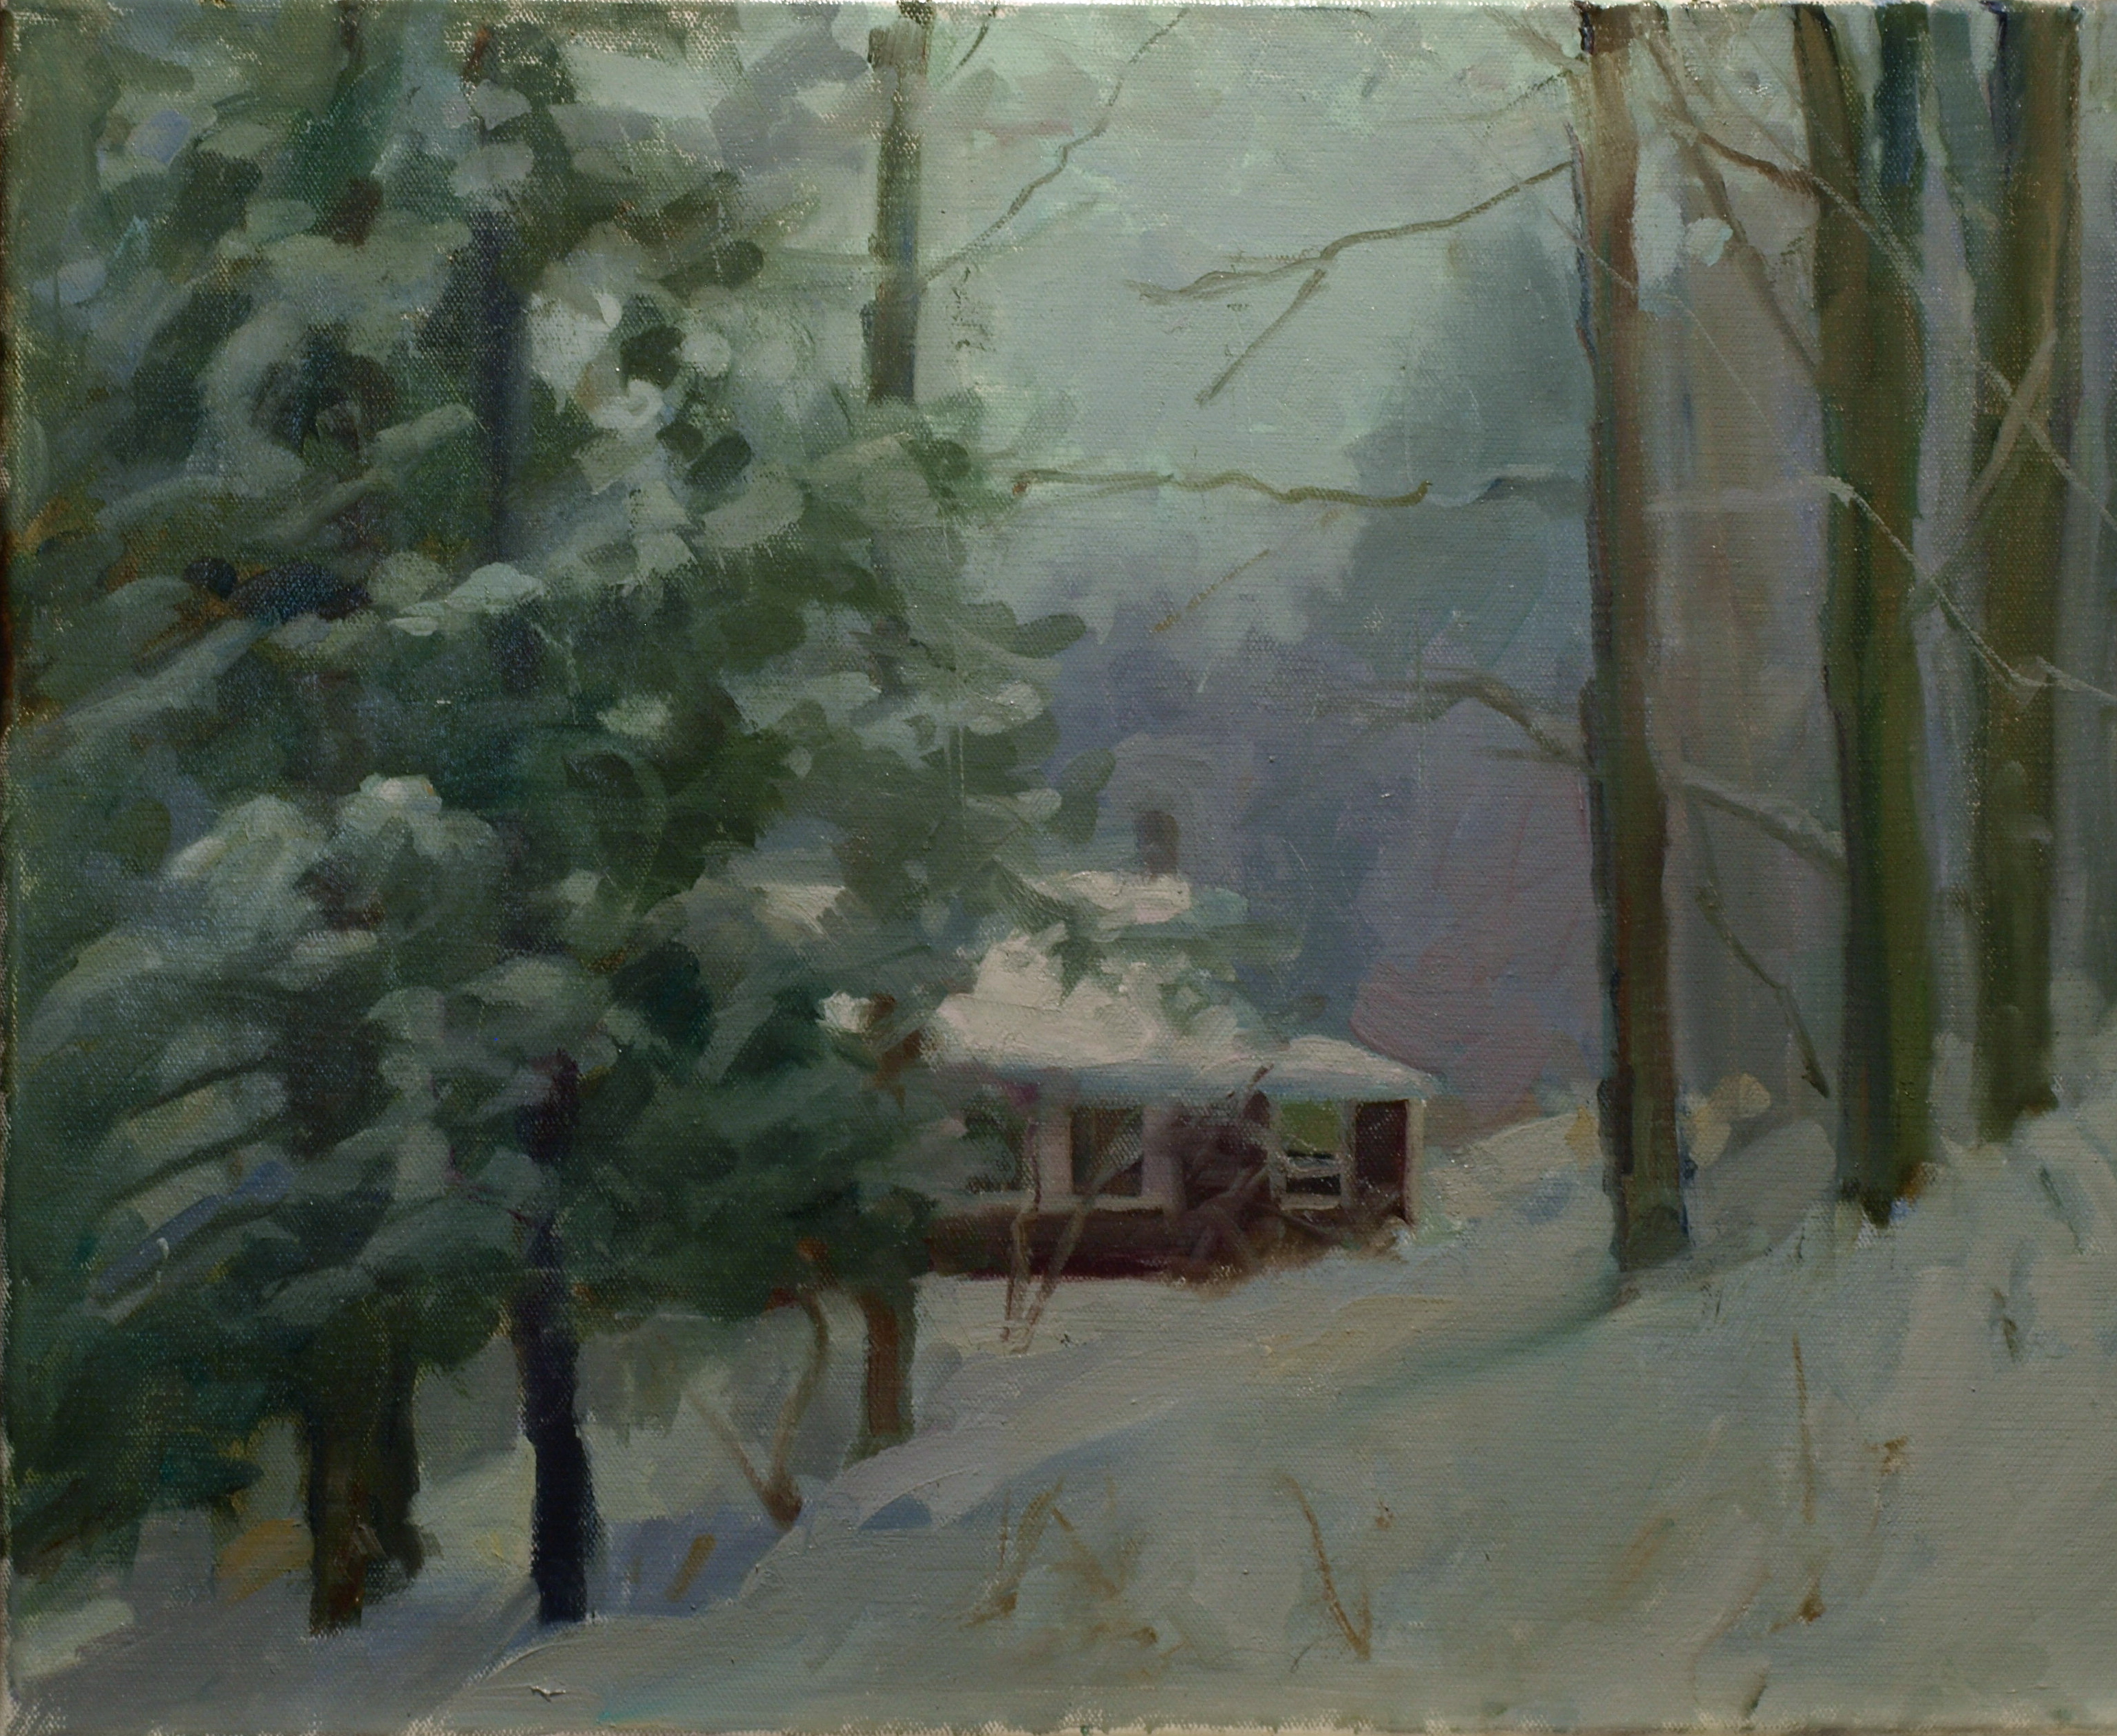 Winter at Home, Oil on Canvas, 16 x 20 Inches, by Susan Grisell, $475